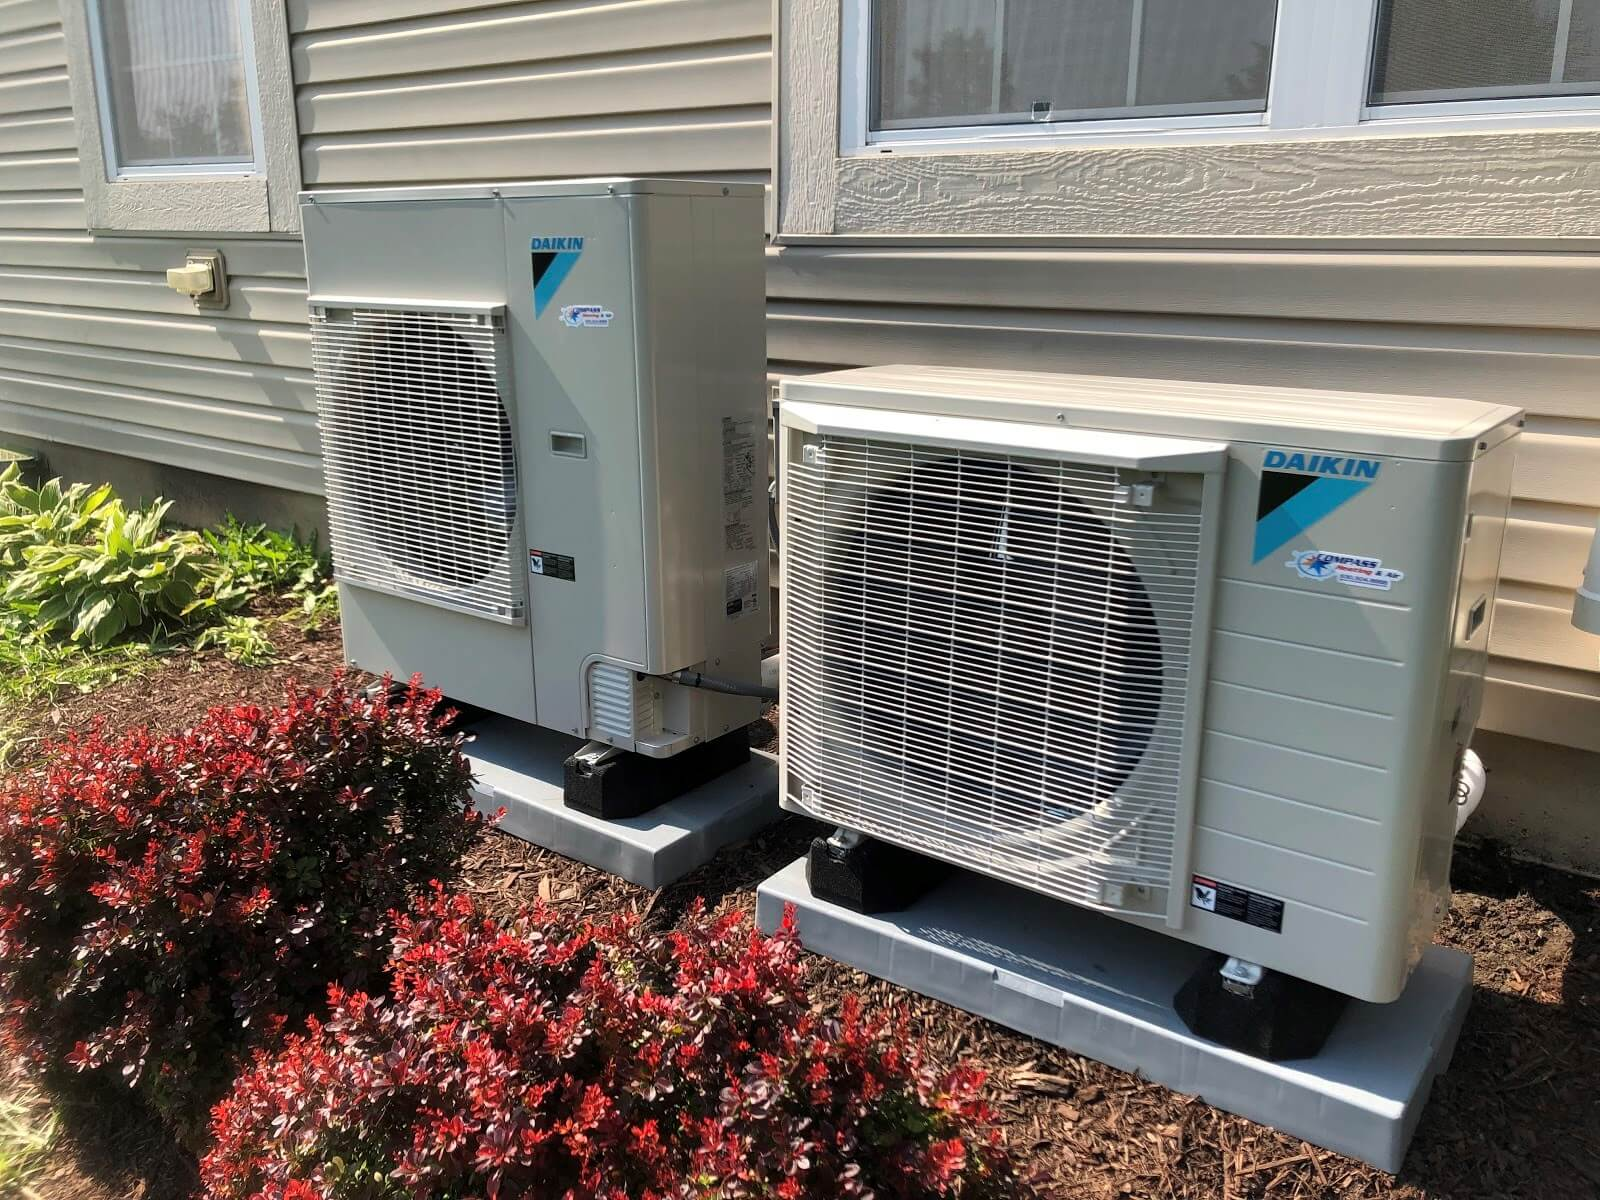 High efficiency equipment like Daikin Systems will save you energy